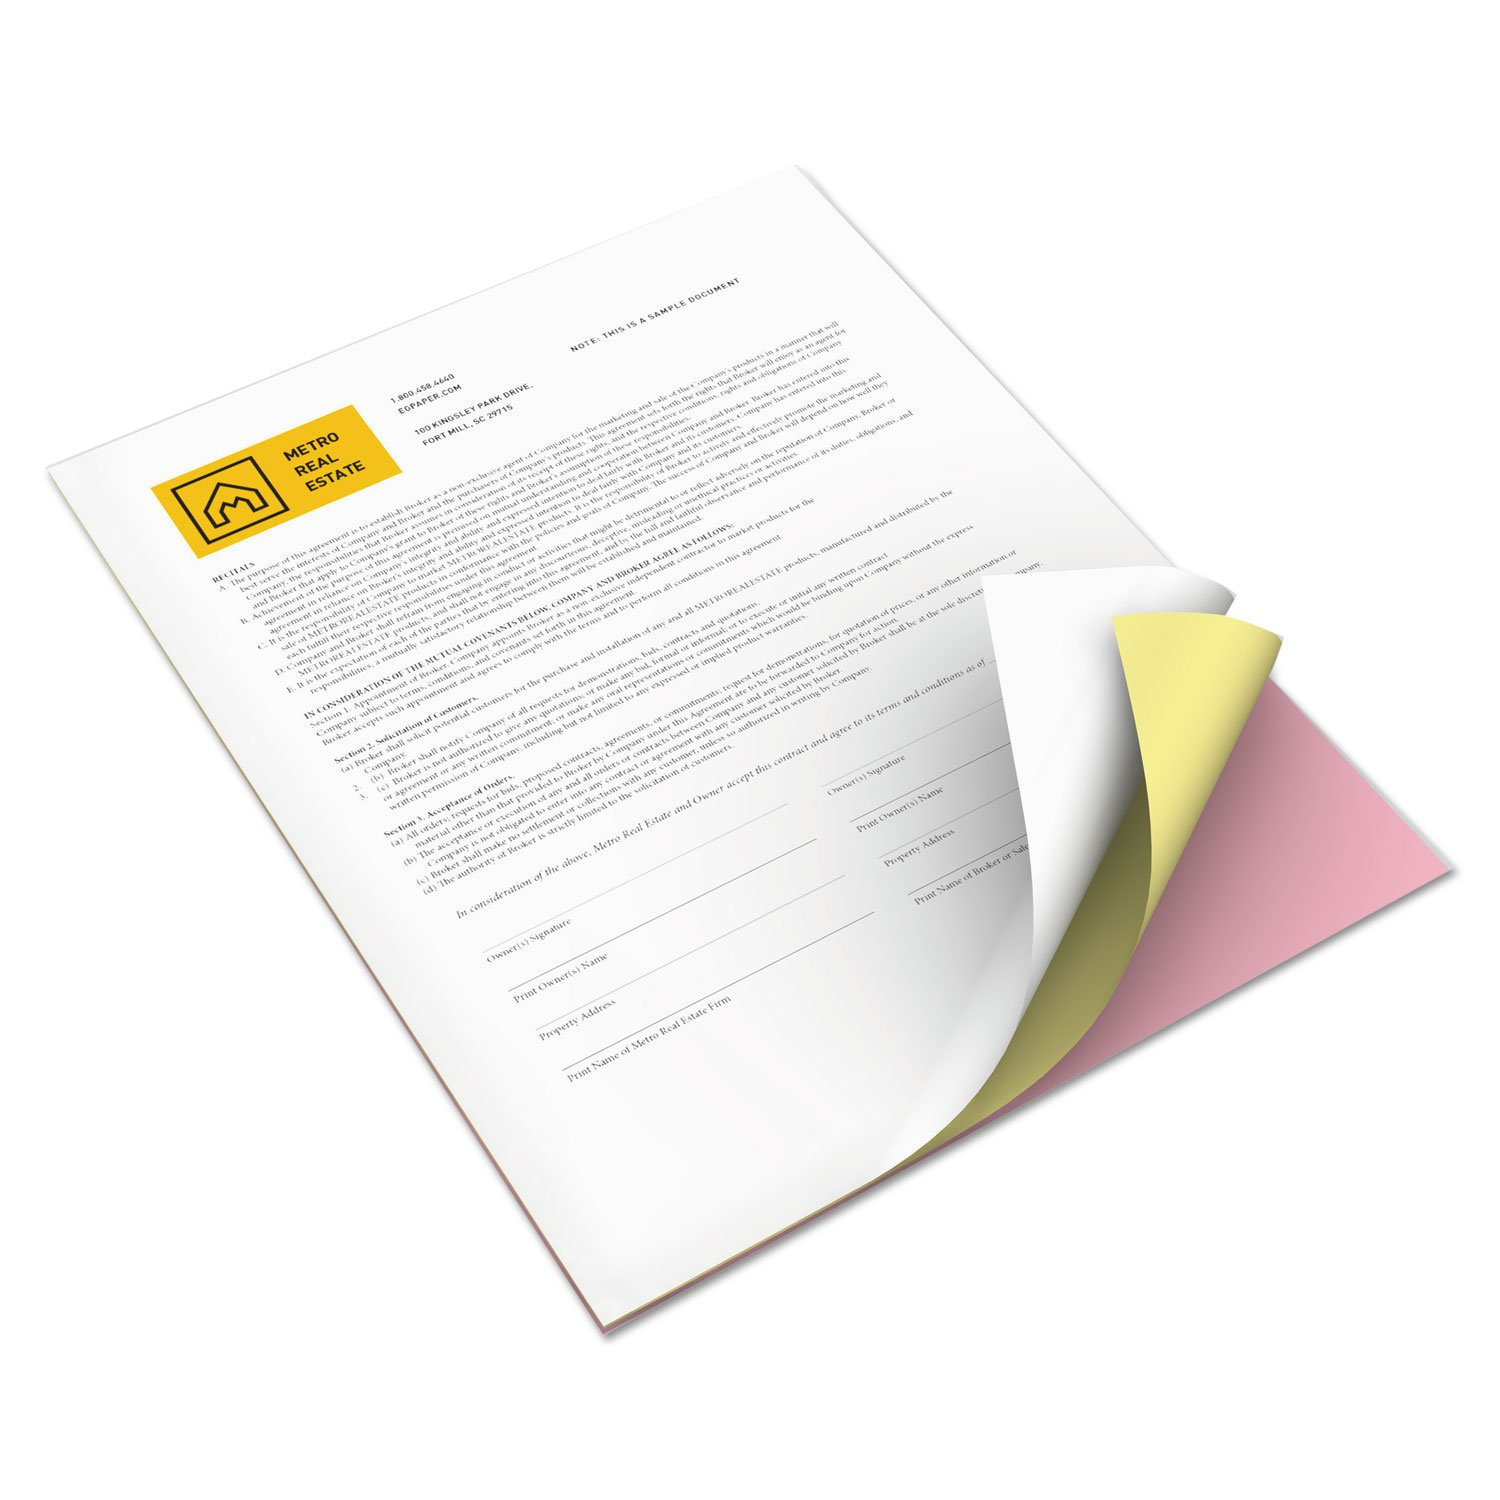 Xerox 3R12425 Revolution Digital Carbonless Paper, 8 1/2 x 11, Wh/Can/Pink, 5,000 Sheets/CT by Xerox (Image #1)